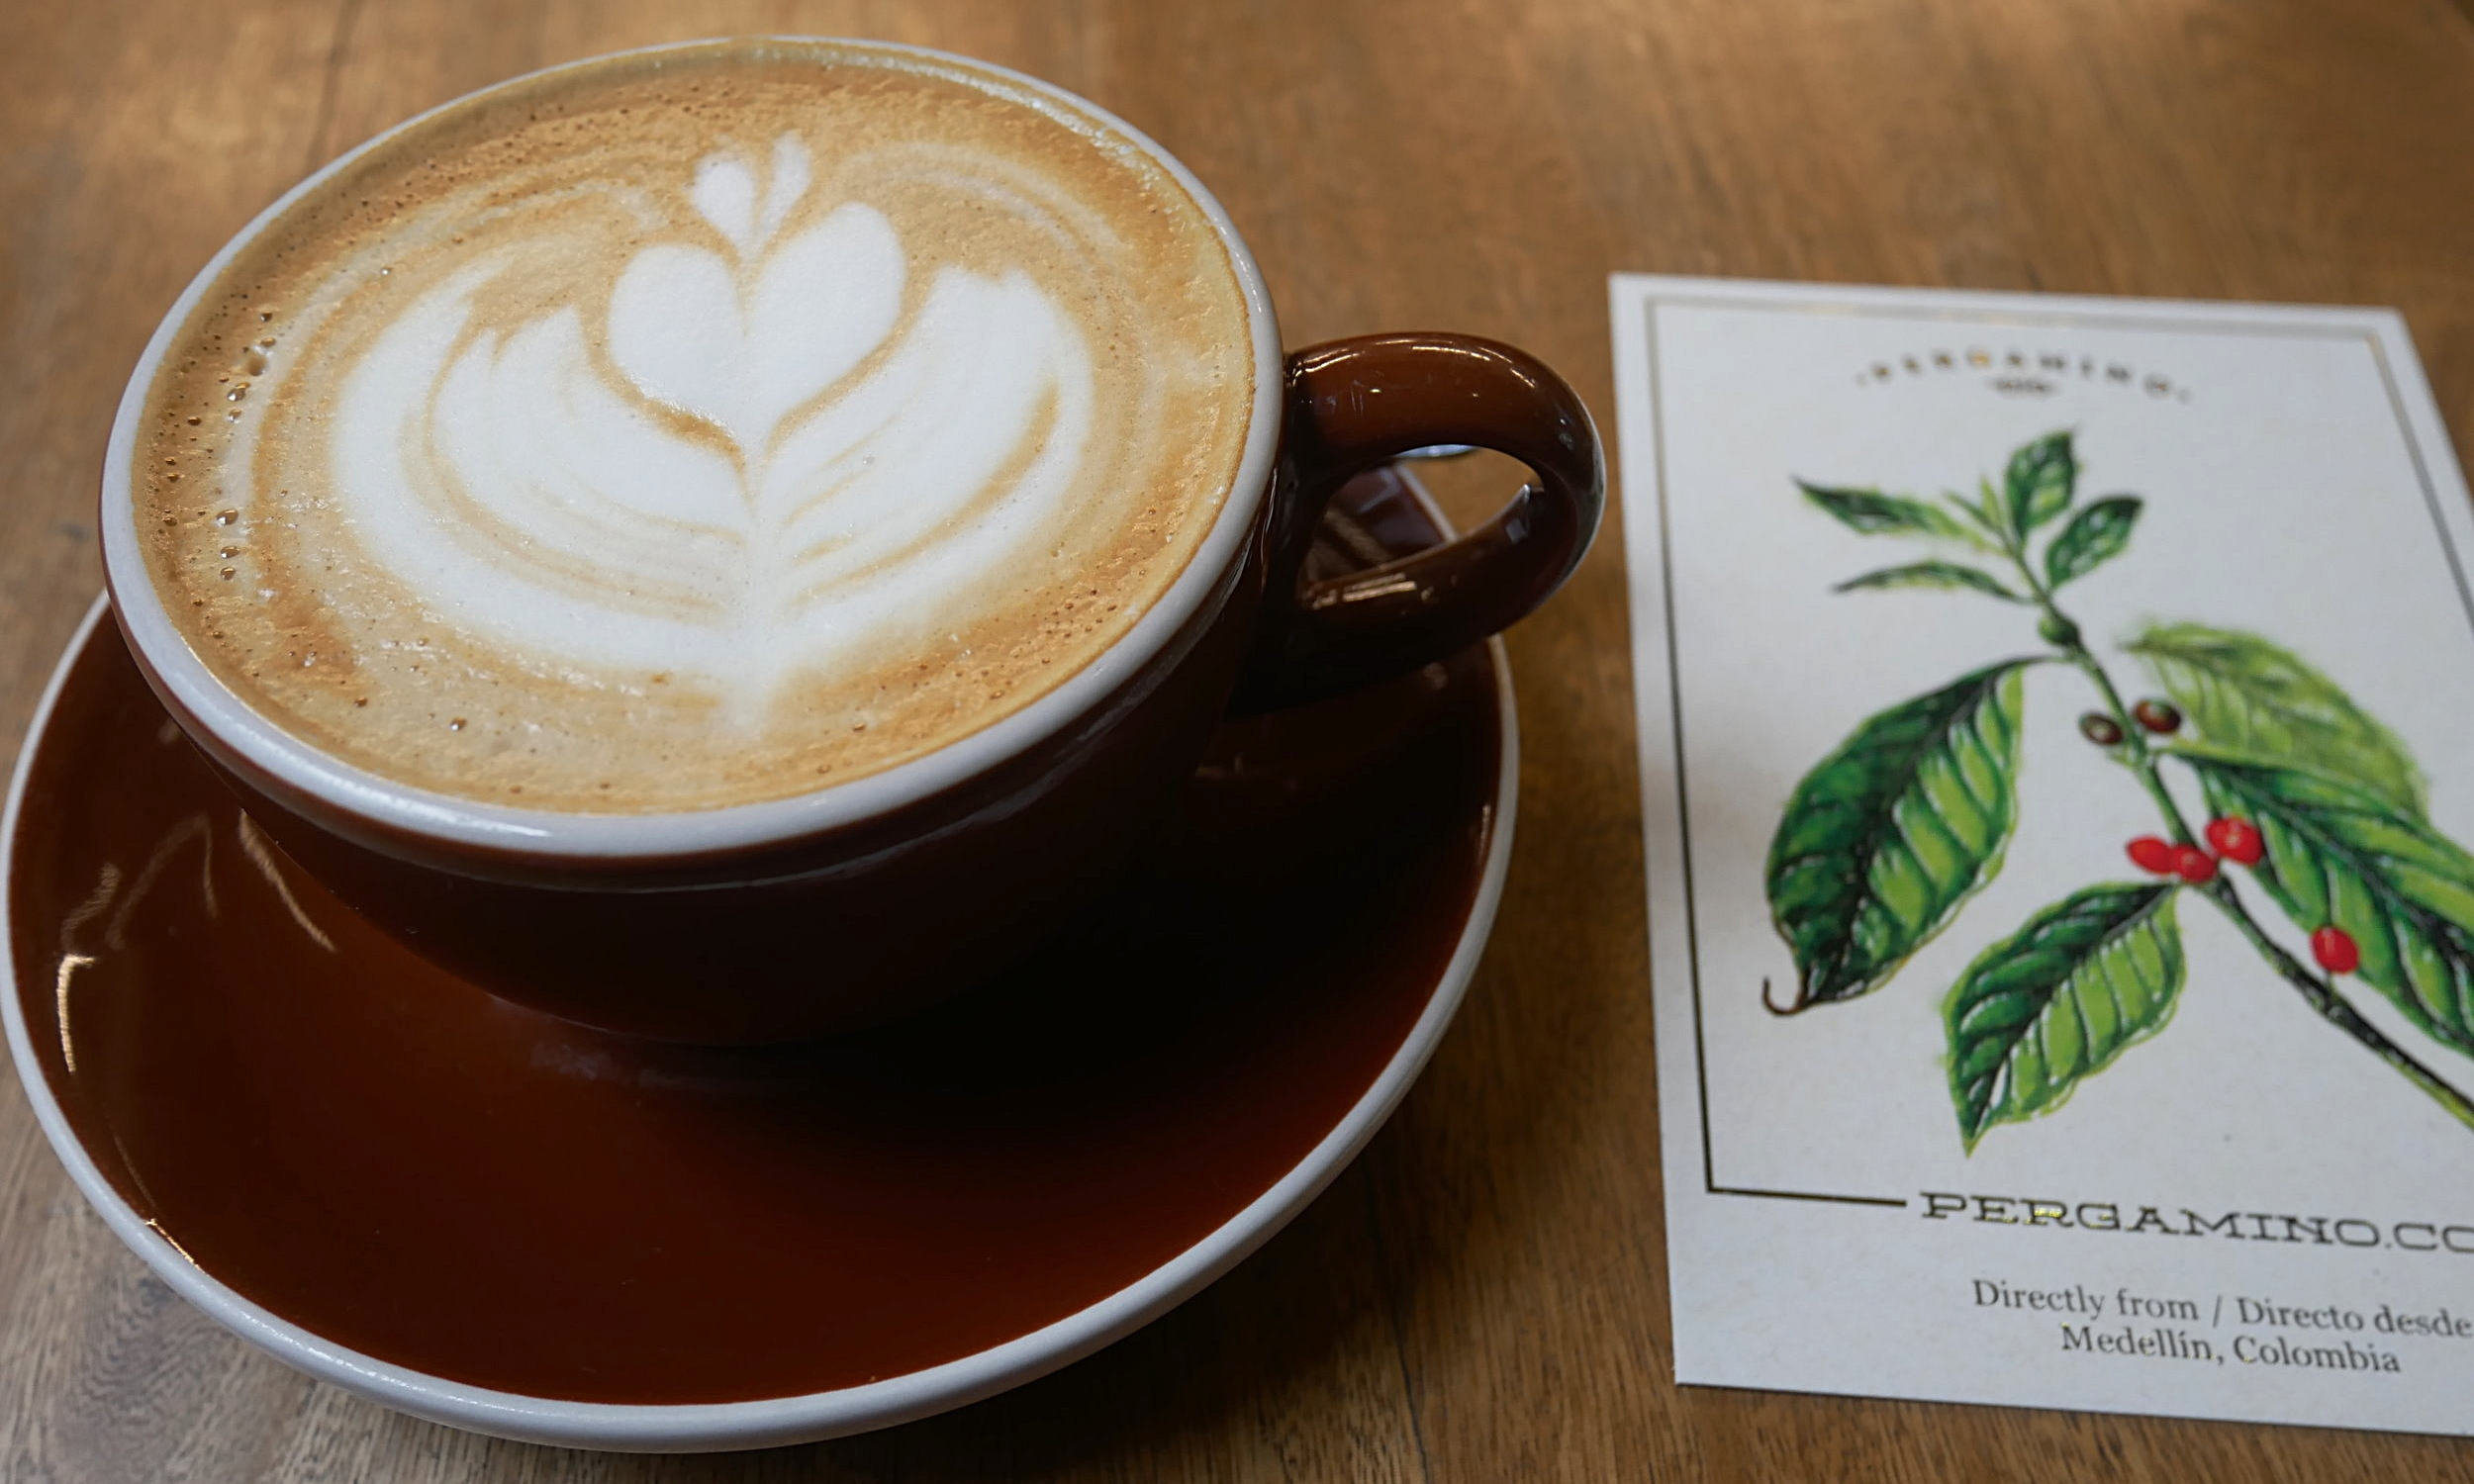 Pergamino coffee - the perfect way to start your day in Medellin